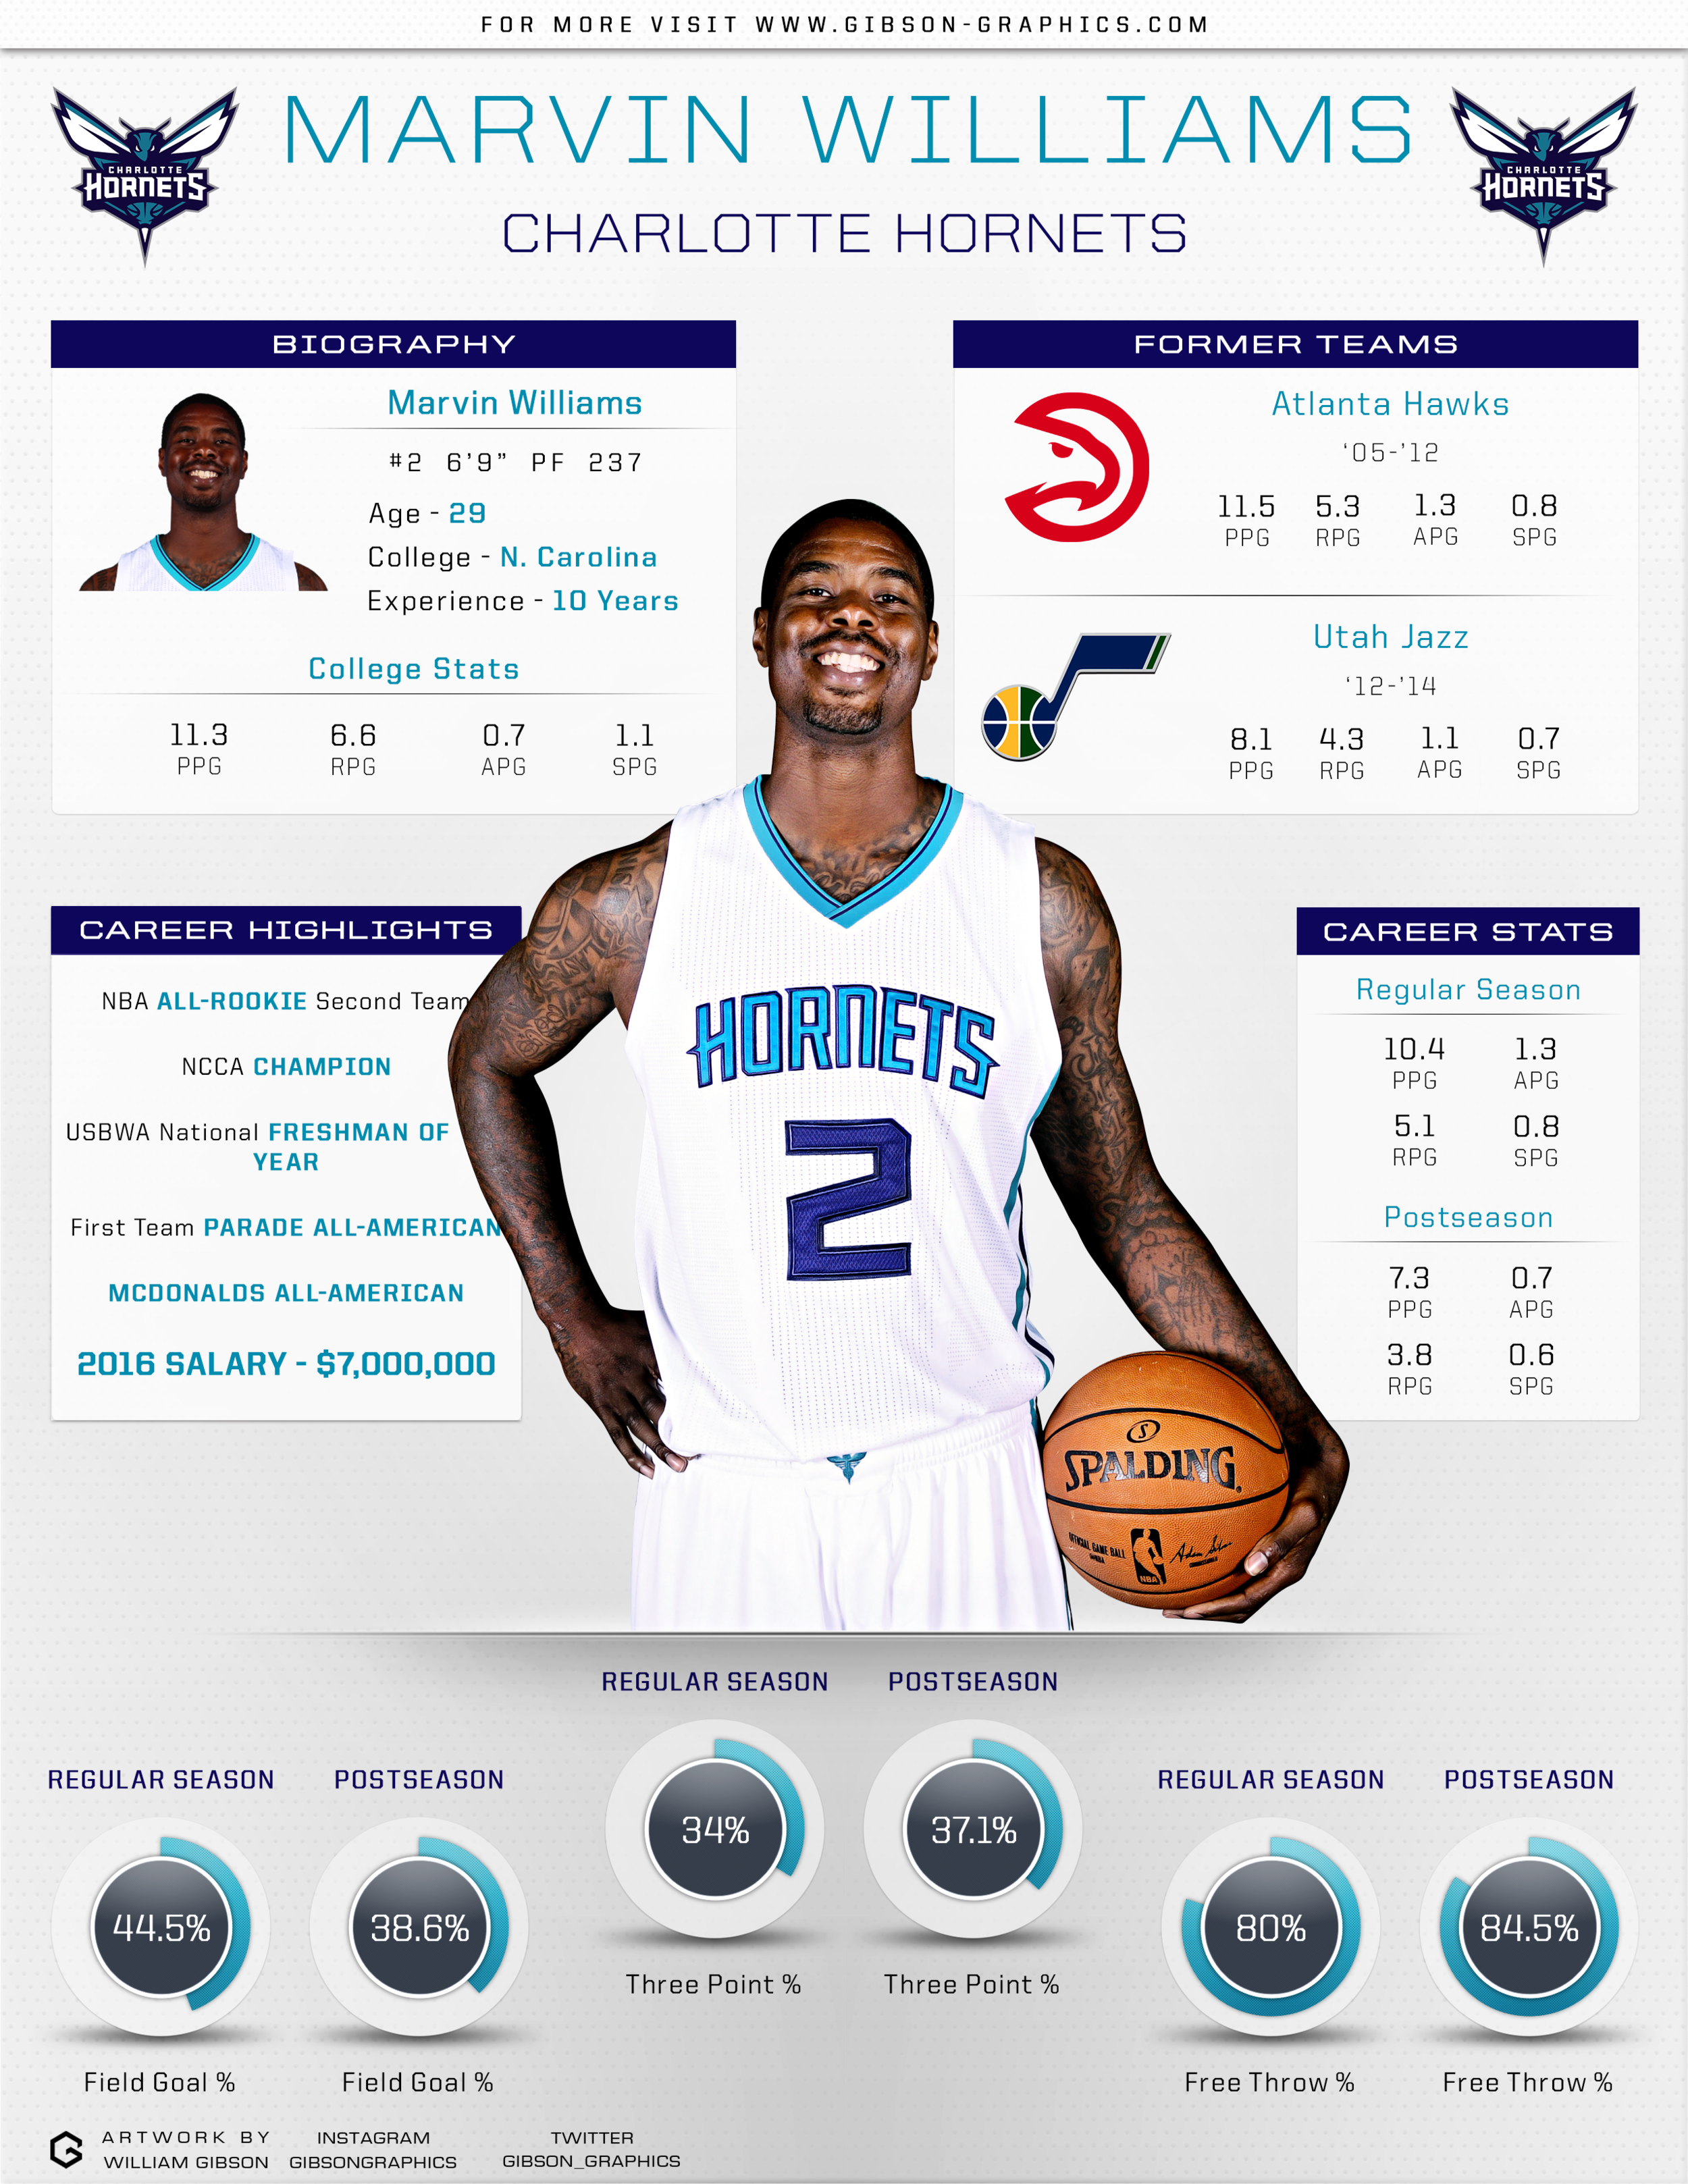 Marvin Williams Infographic